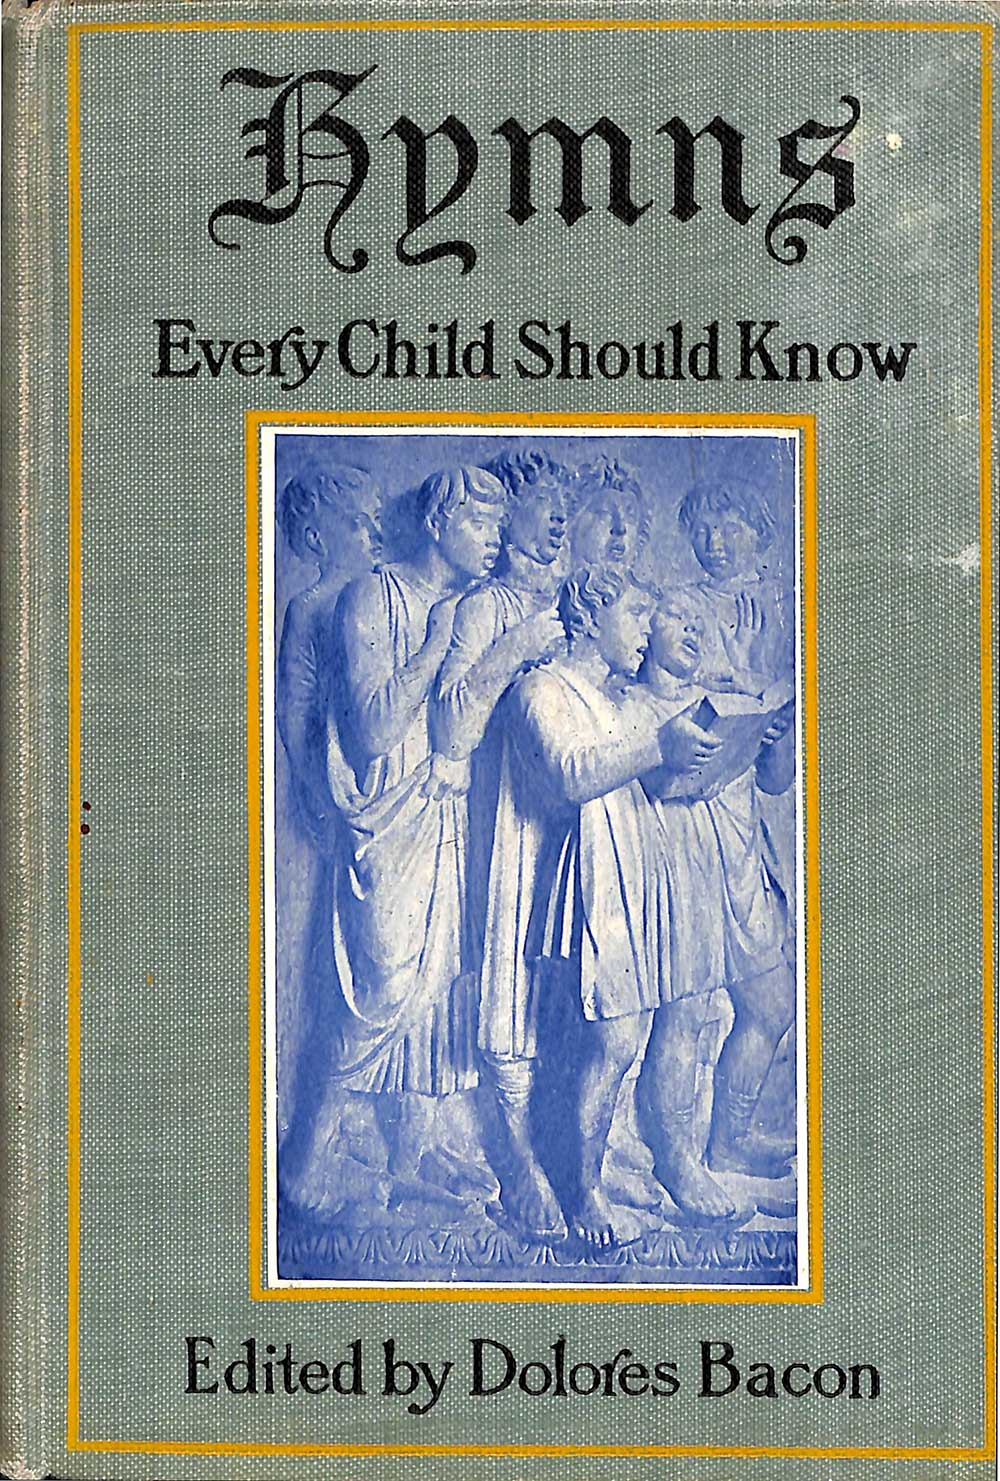 Dolores Bacon (editor). <em>Hymns that every child should know: a selection of the best hymns of all nations for young people.</em> New York: Grosset & Dunlap, 1907.